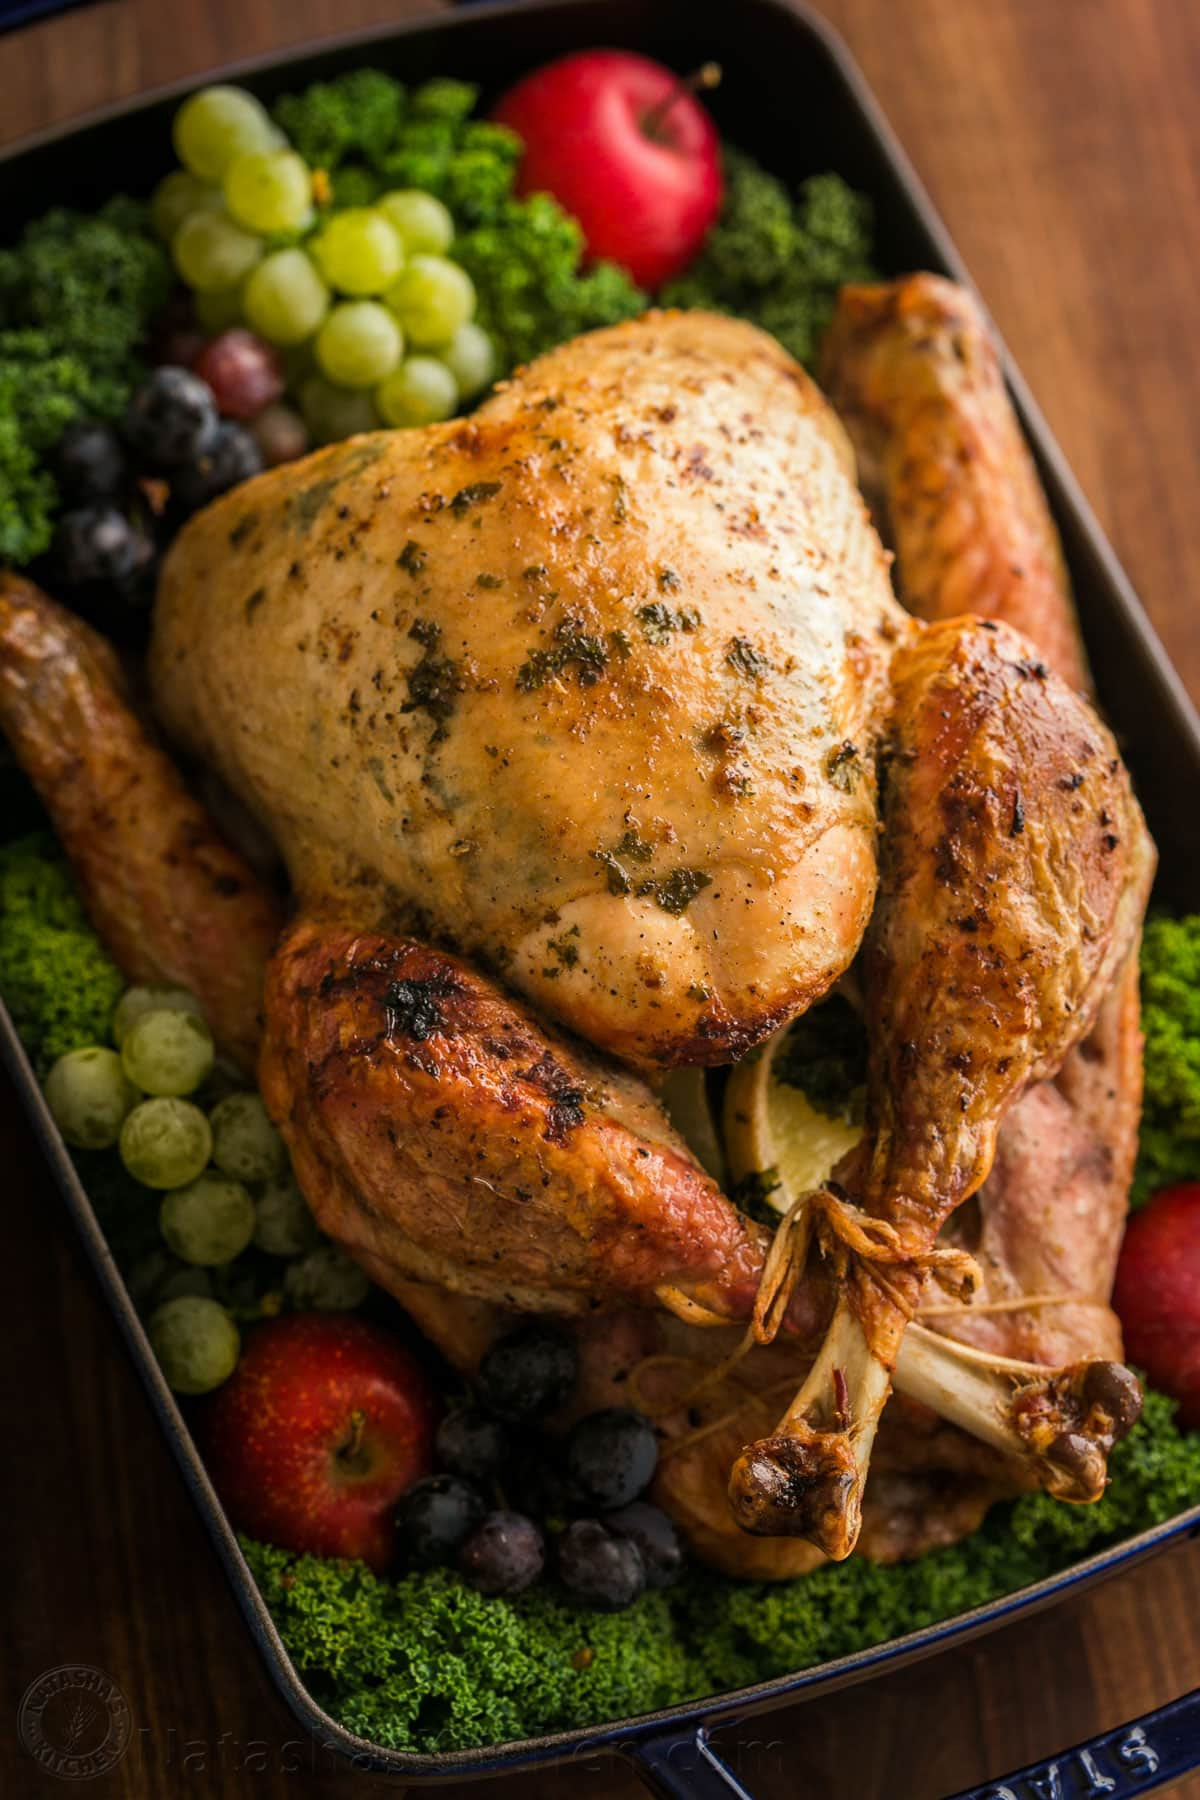 Thanksgiving Turkey Recipe  Thanksgiving Turkey Recipe VIDEO NatashasKitchen